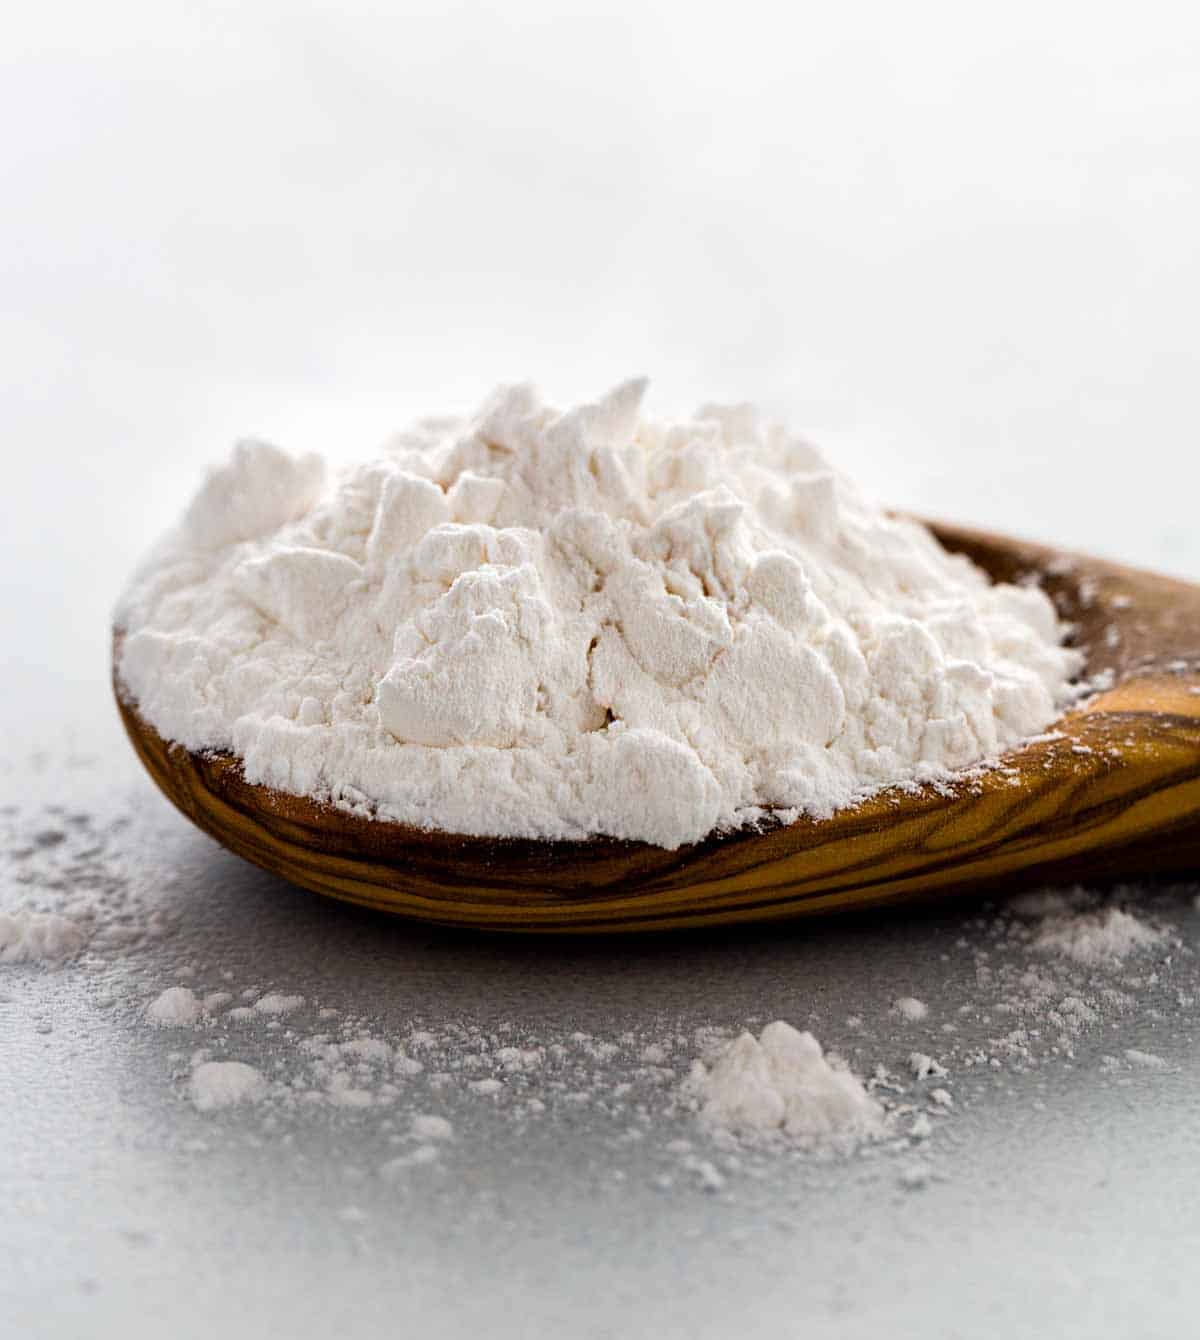 Closeup photo showing clumps of white arrowroot powder on a wooden spoon